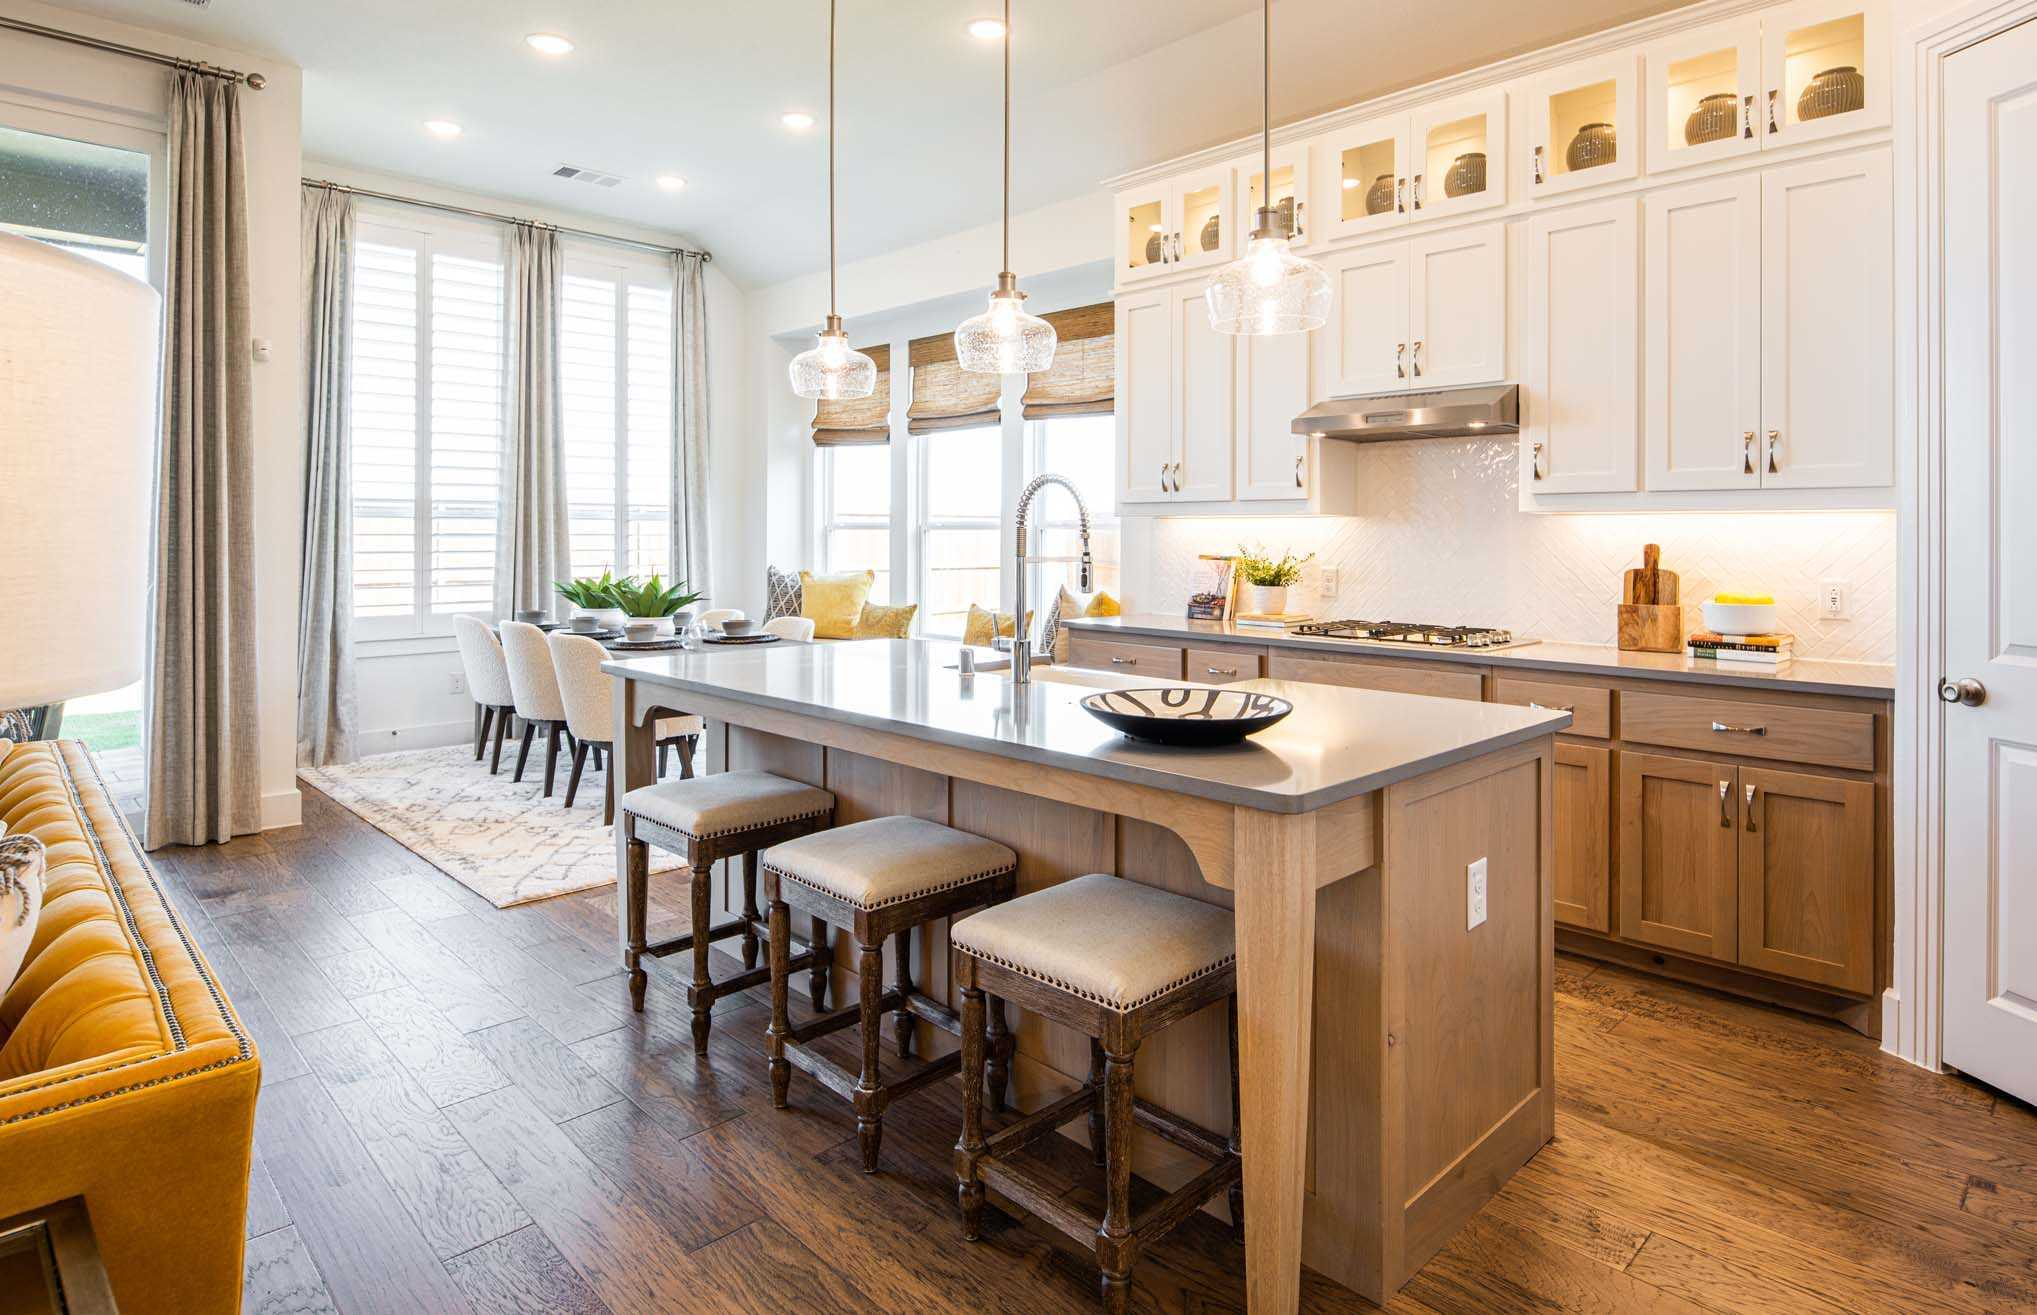 Kitchen featured in the Plan Denton By Highland Homes in Houston, TX